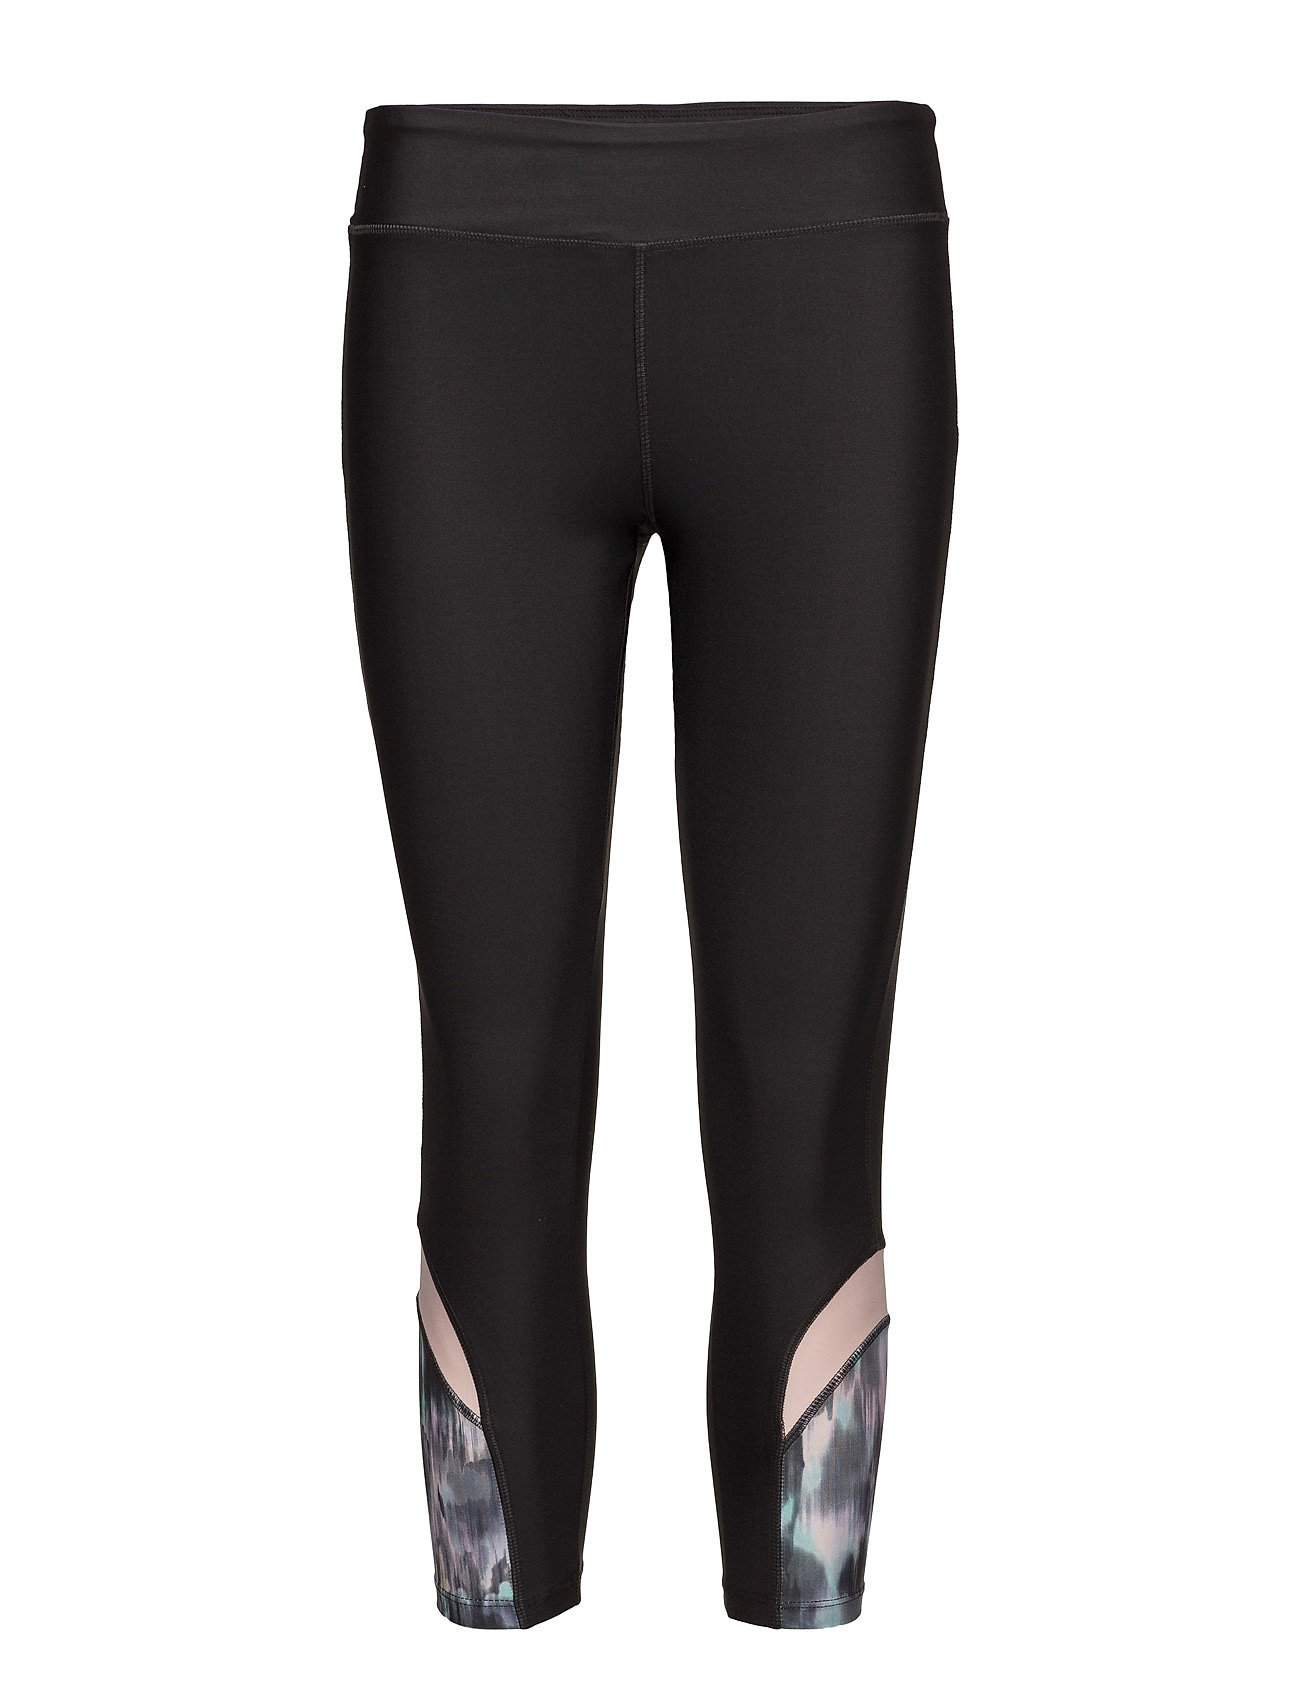 Multi-Sport Capri Leggings Mango Sports Trænings leggings til Damer i